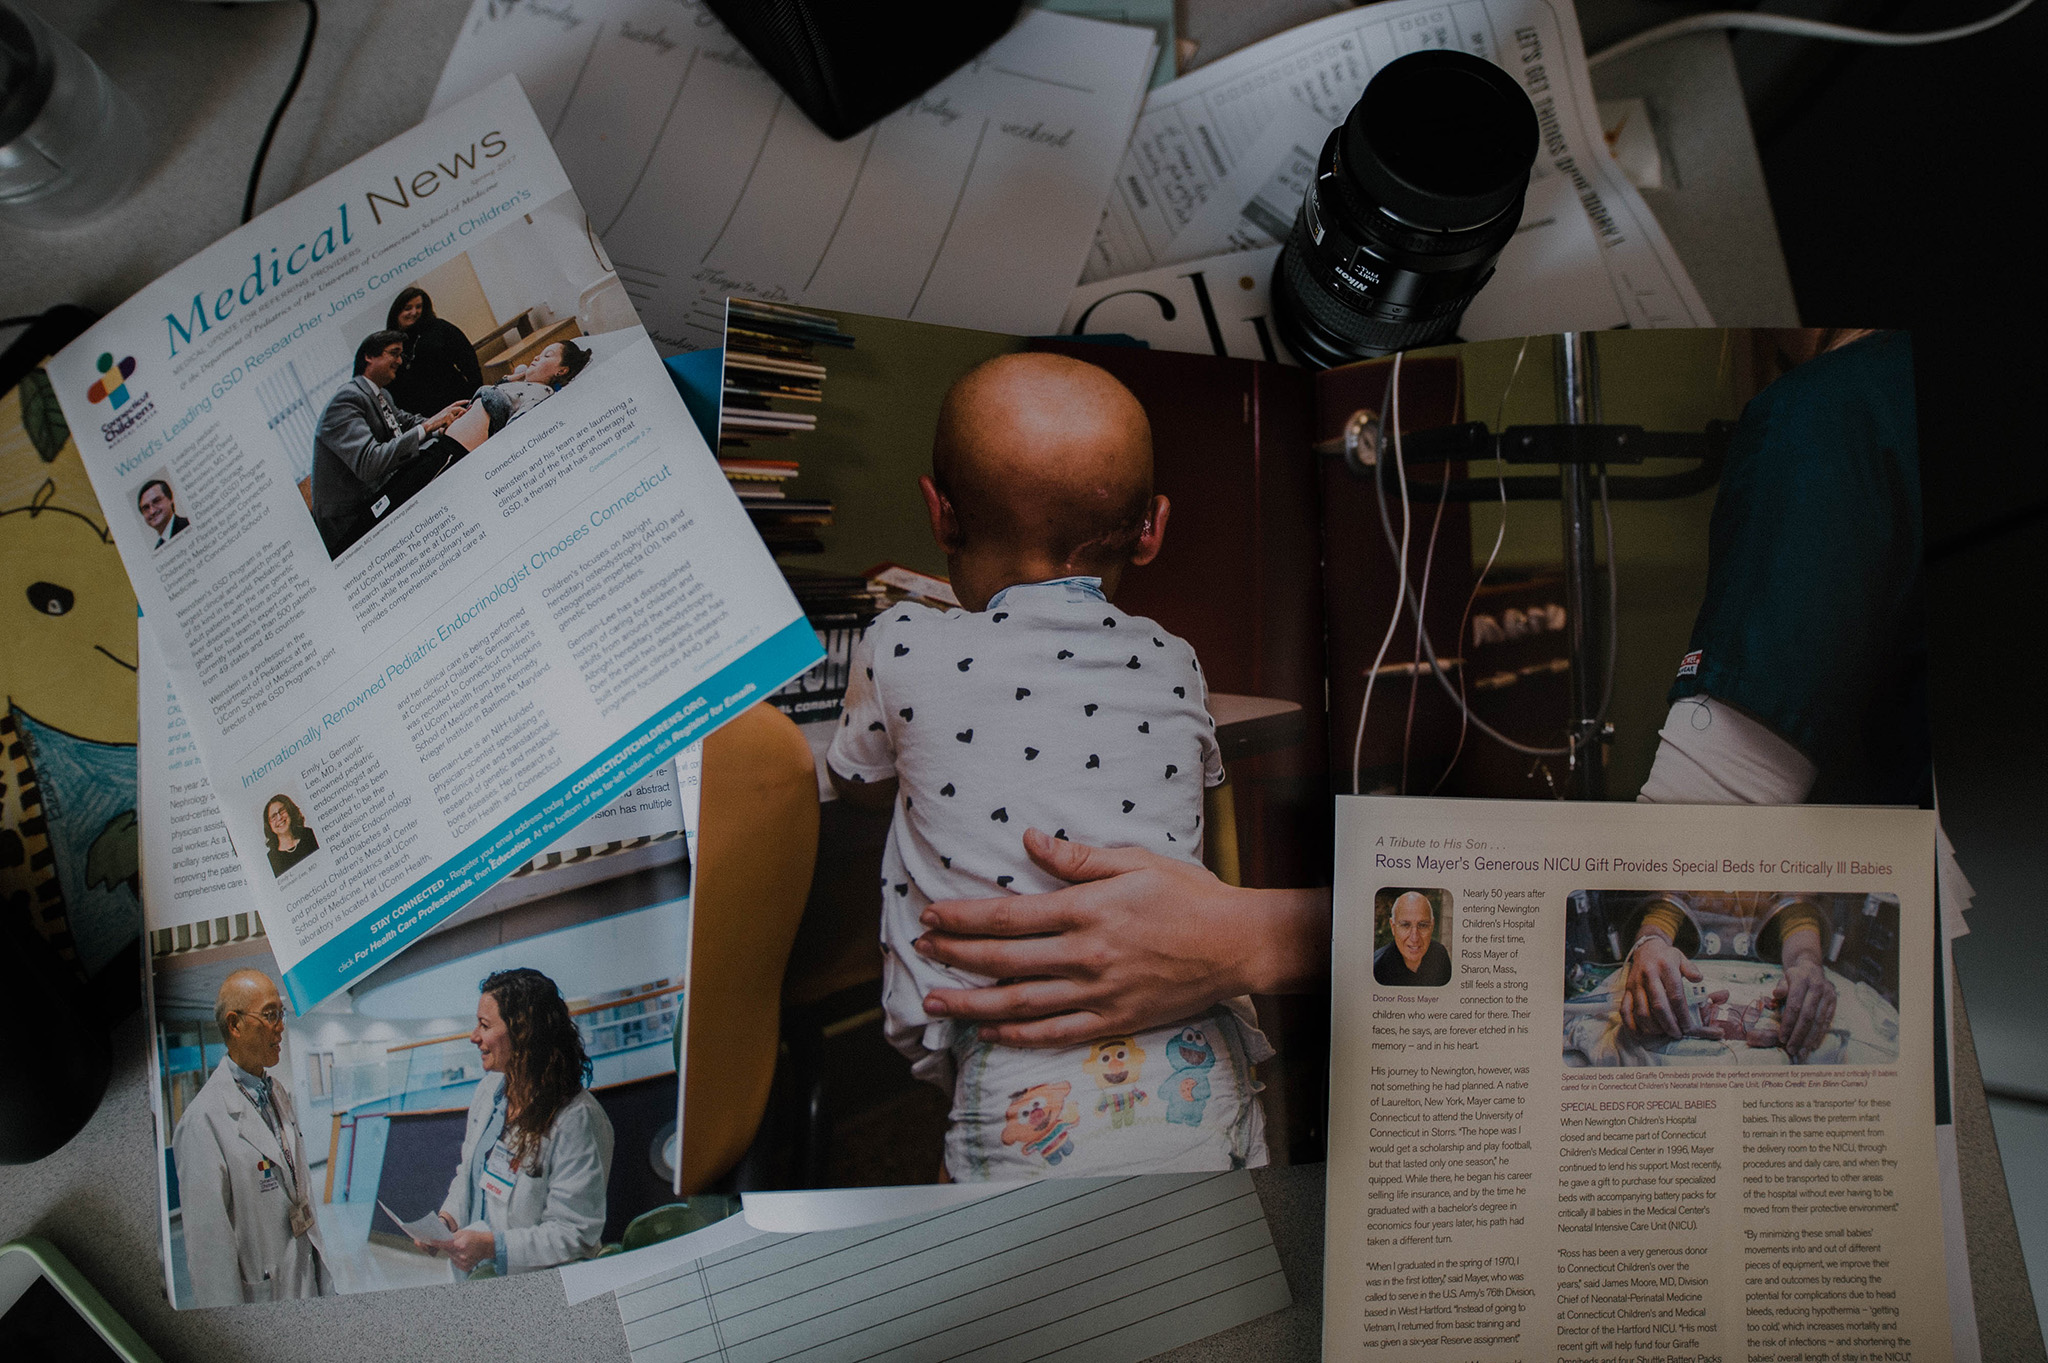 September 5: Seeing my photos in print for the hospital both challenges and inspires me.